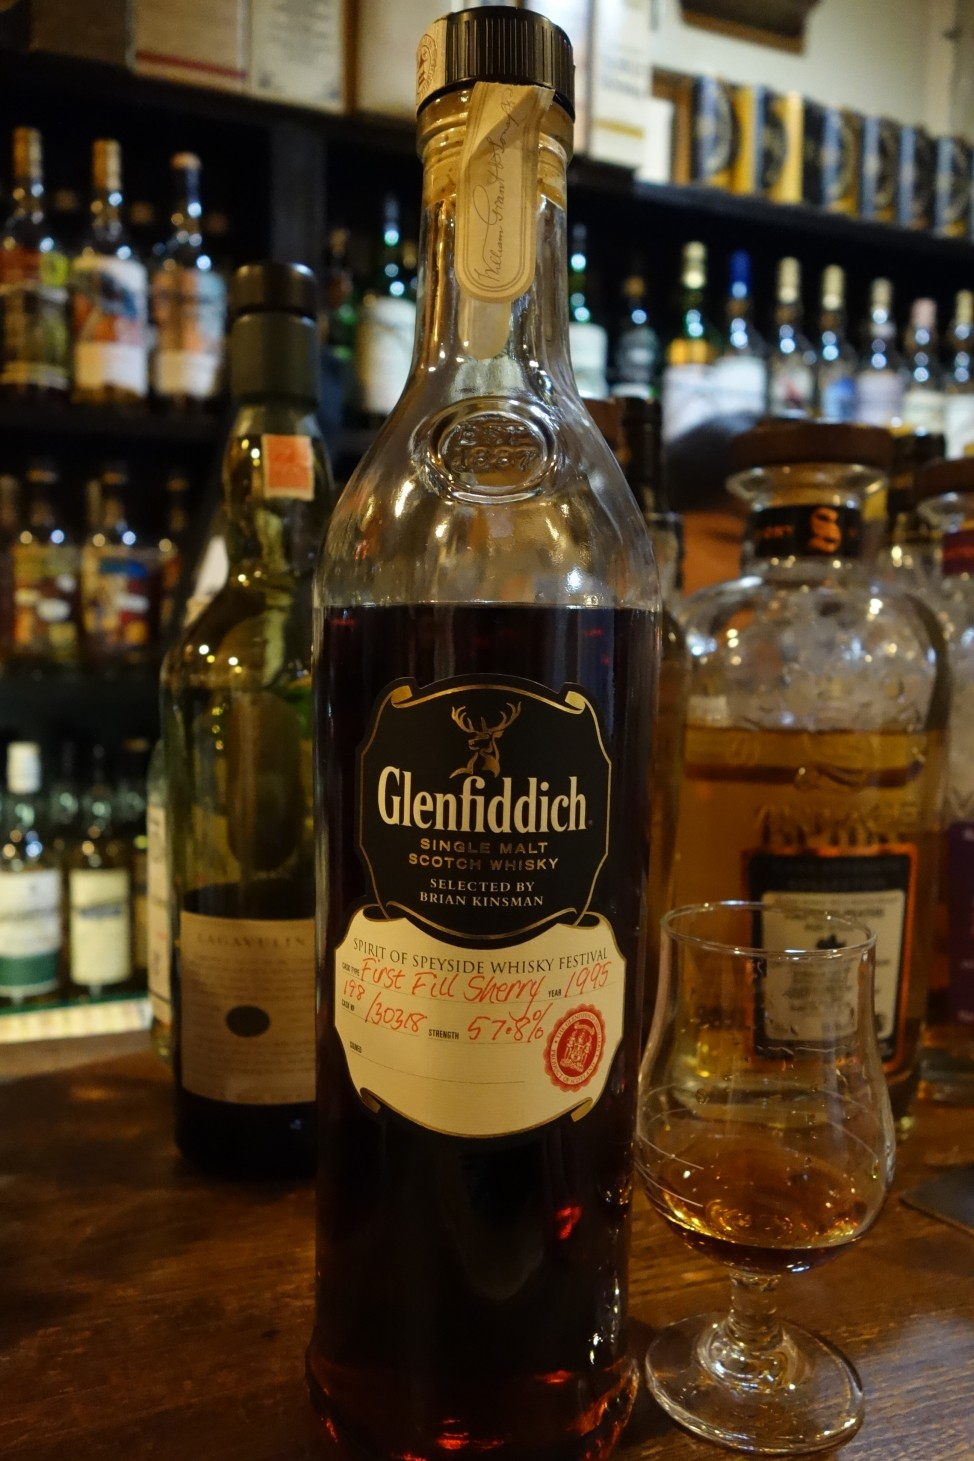 GLENFIDDICH 1995-2015 OB for SPIRIT OF SPEYSIDE WHISKY FESTIVAL #30318